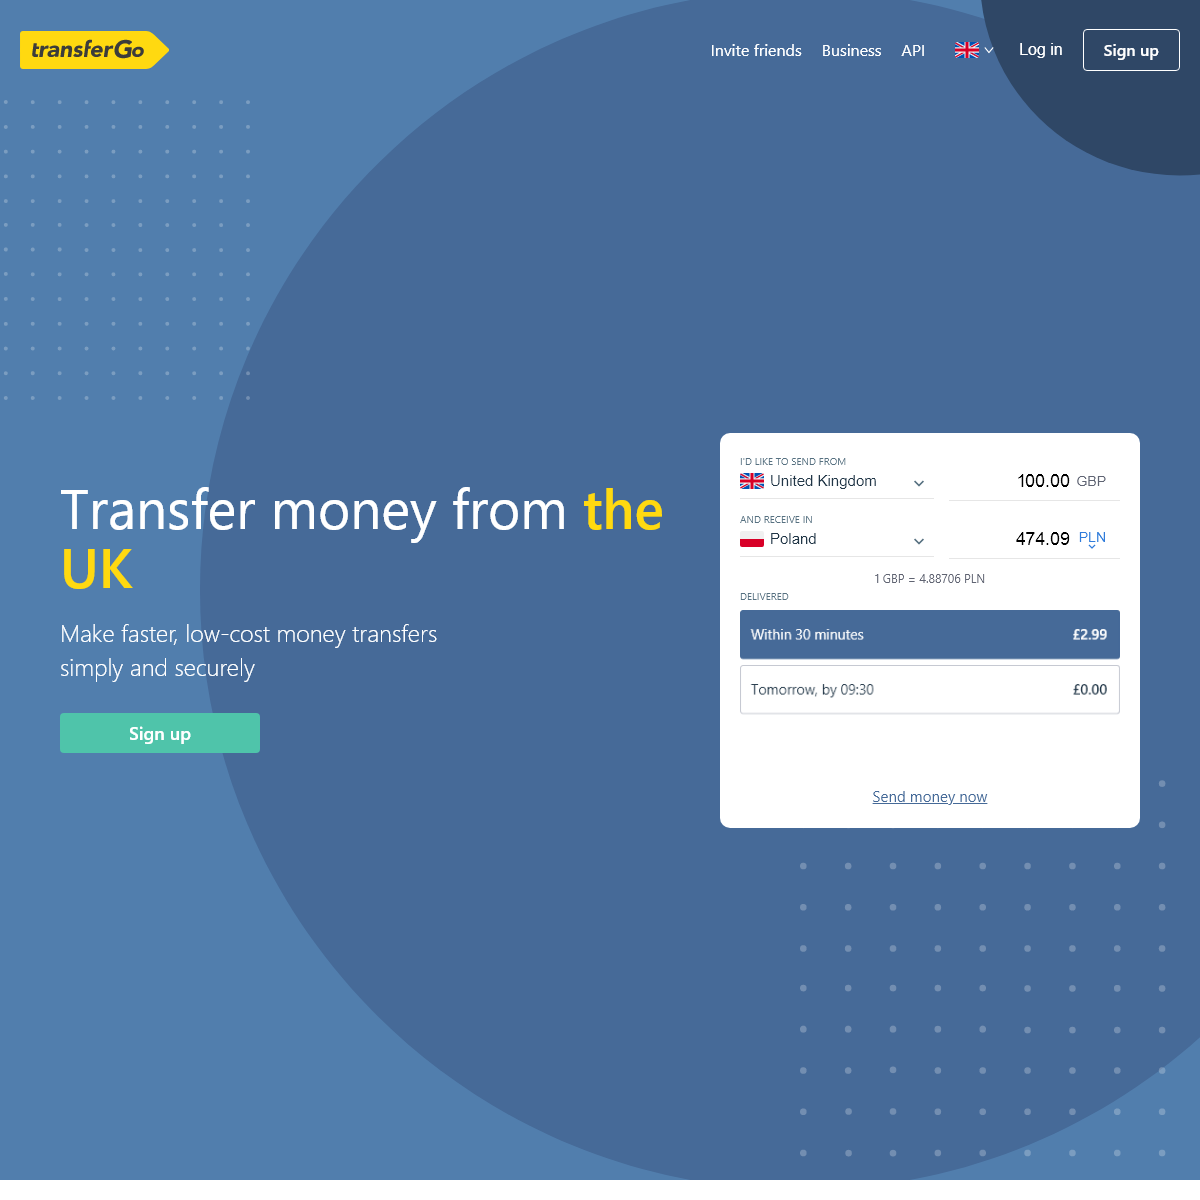 Send money from the UK